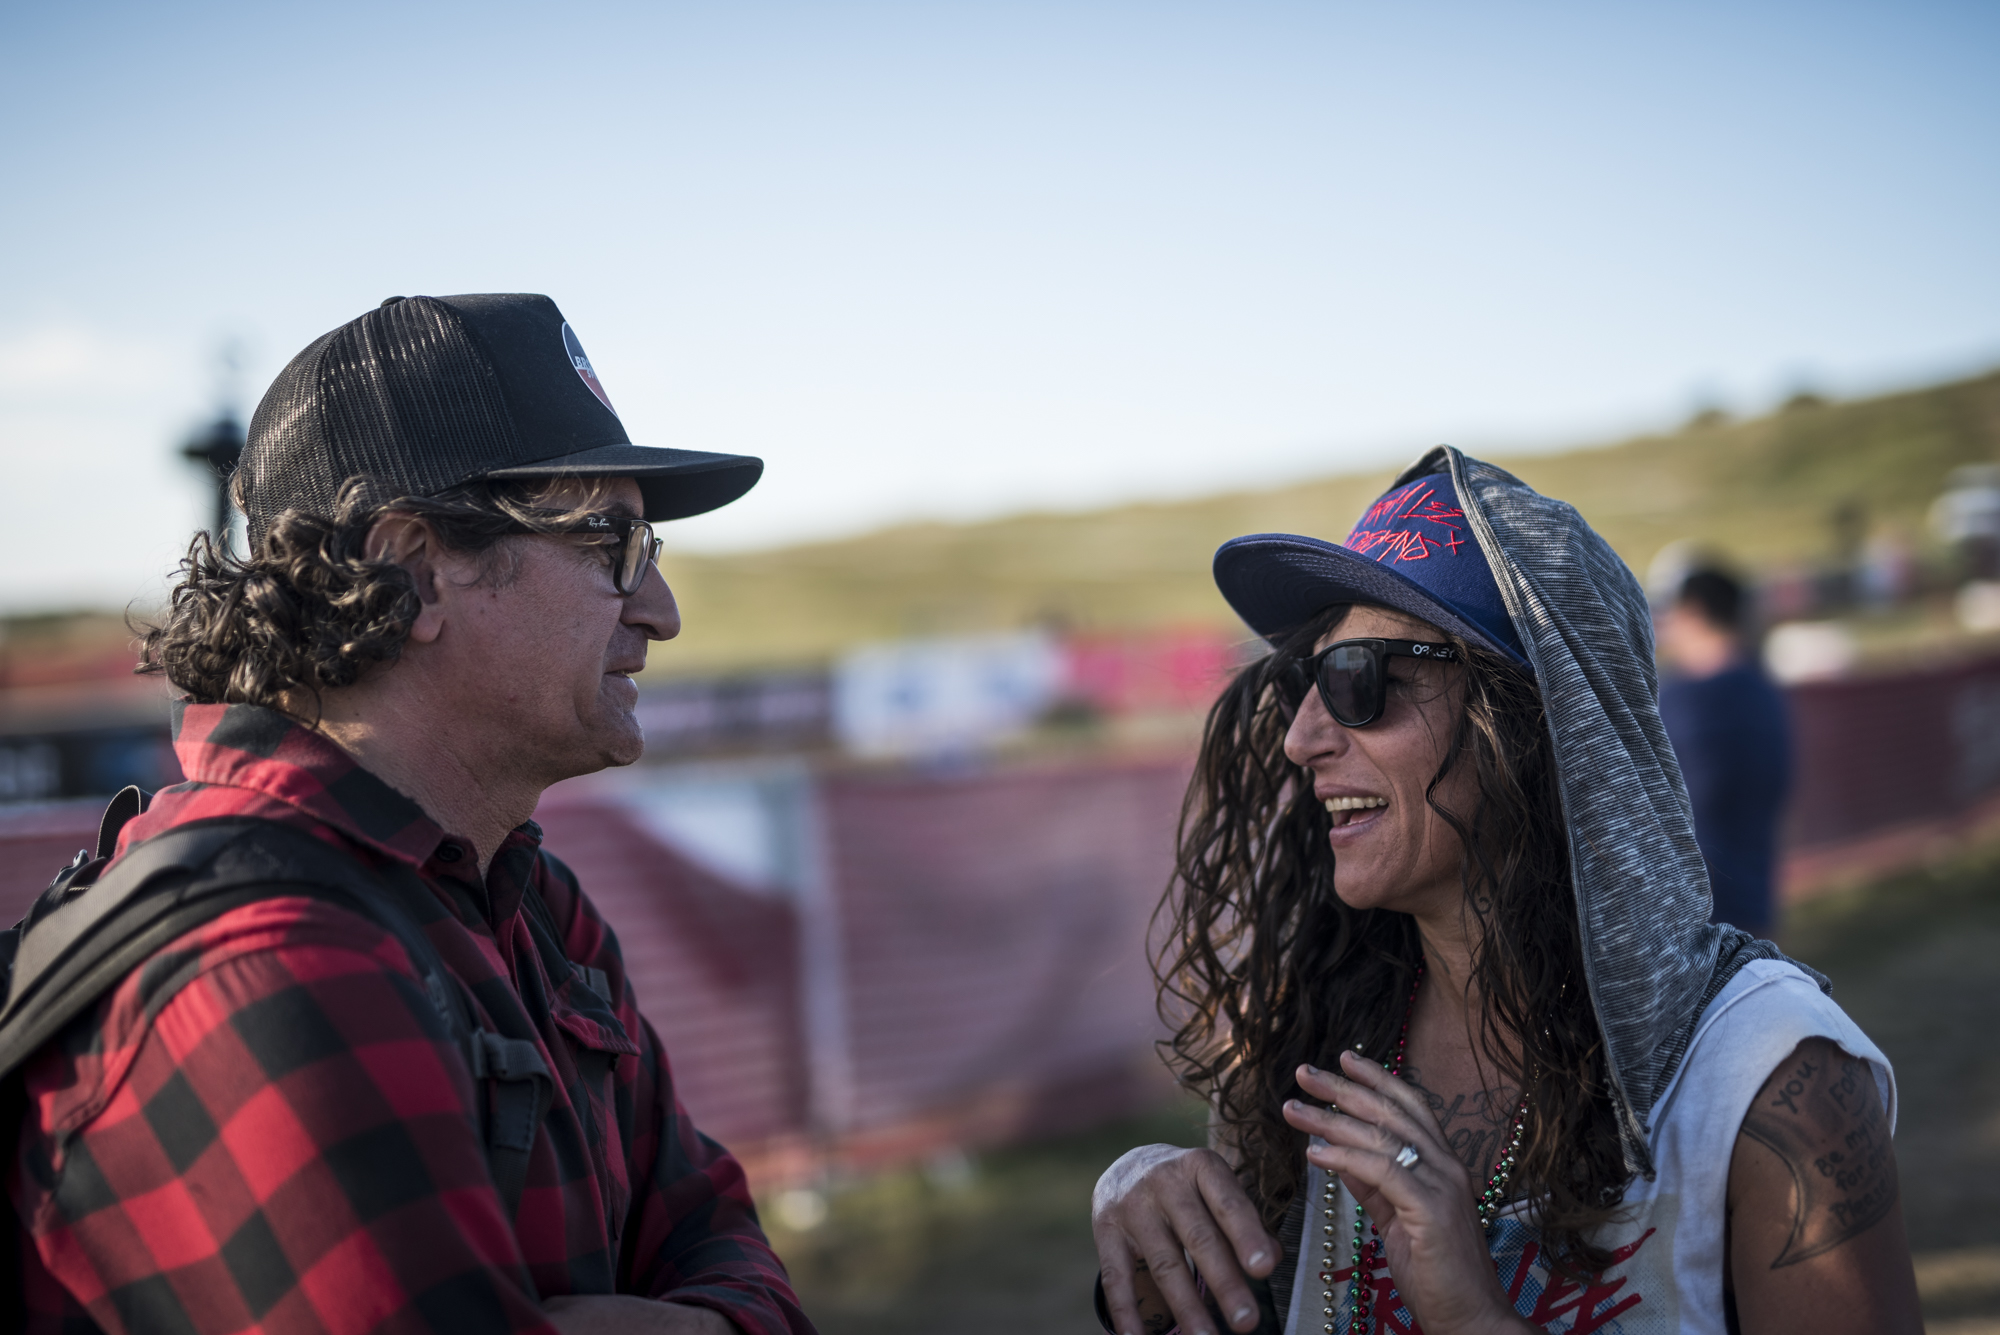 OG as it gets right here : Joe Parkin and Missy. Story time about full lycra and racing DH with bar ends.